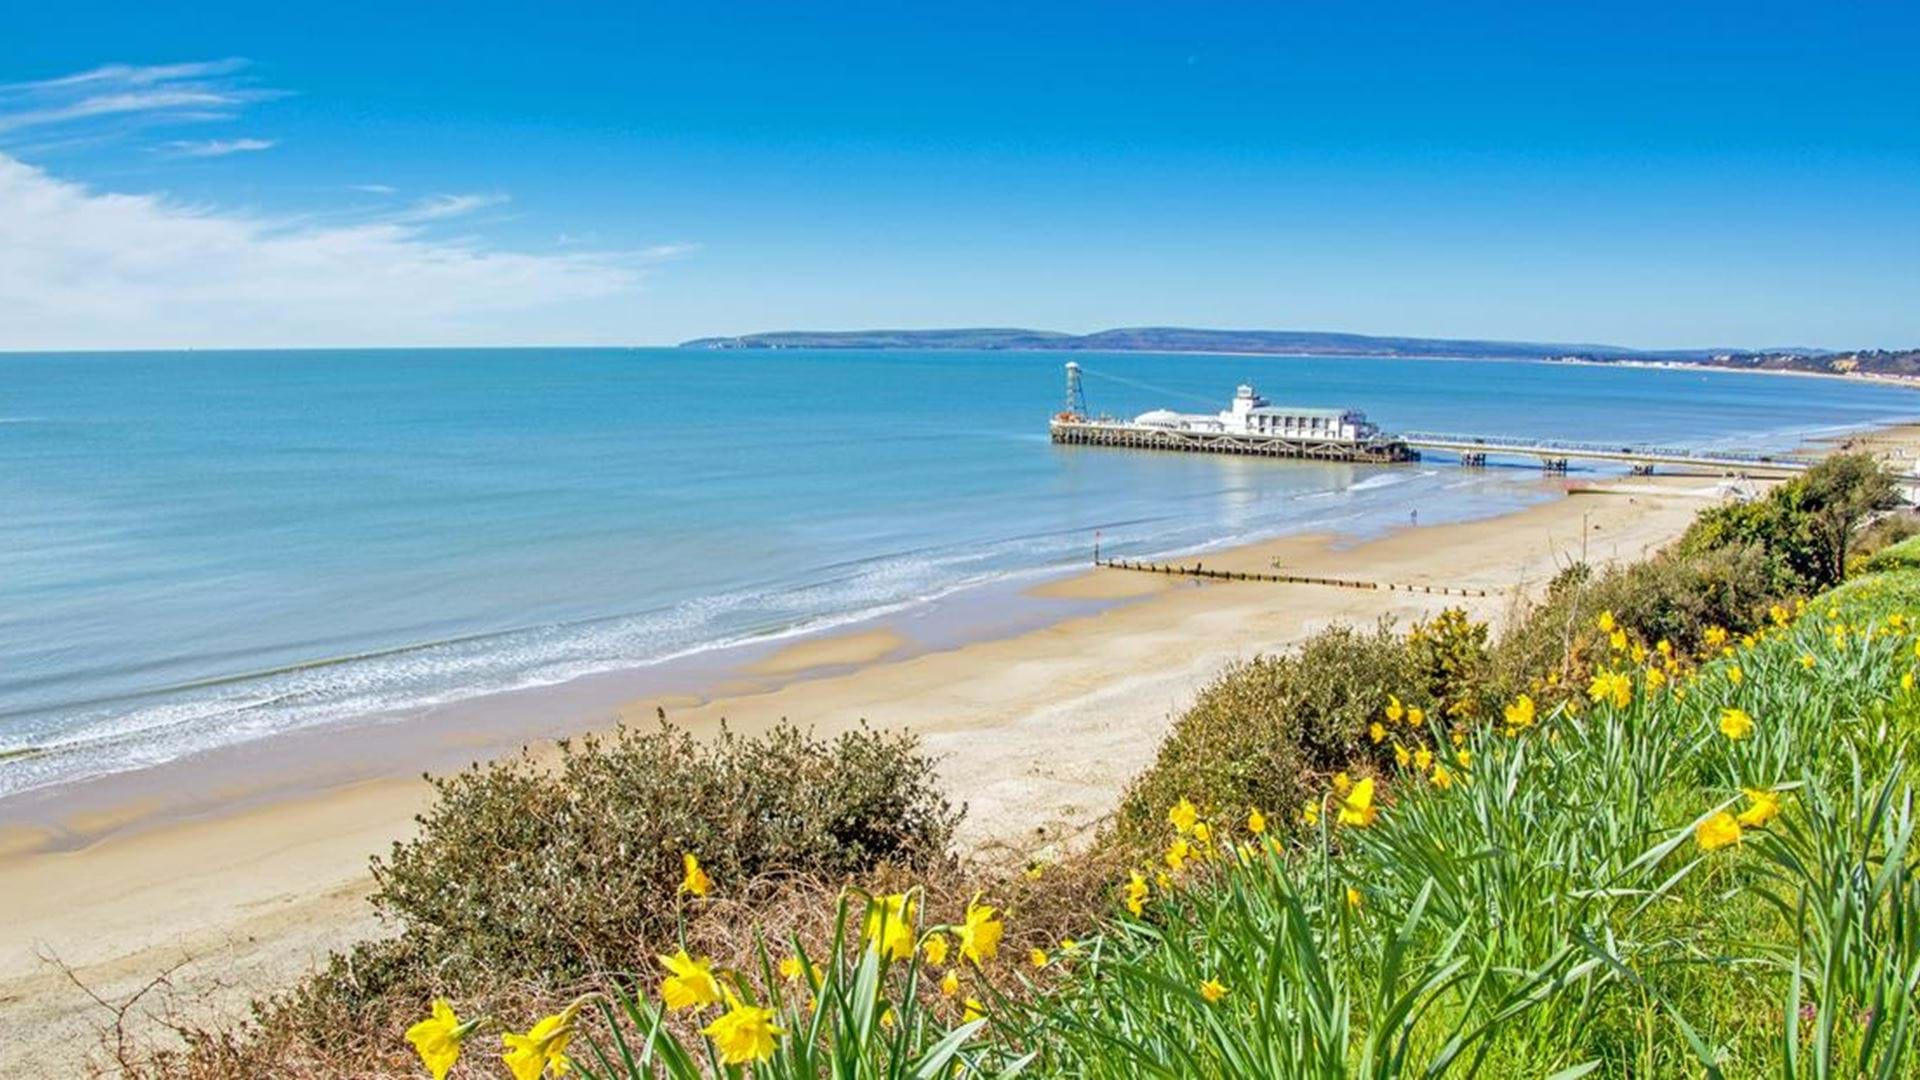 views-of-the-pier-and-bournemouth-beach-in-dorset